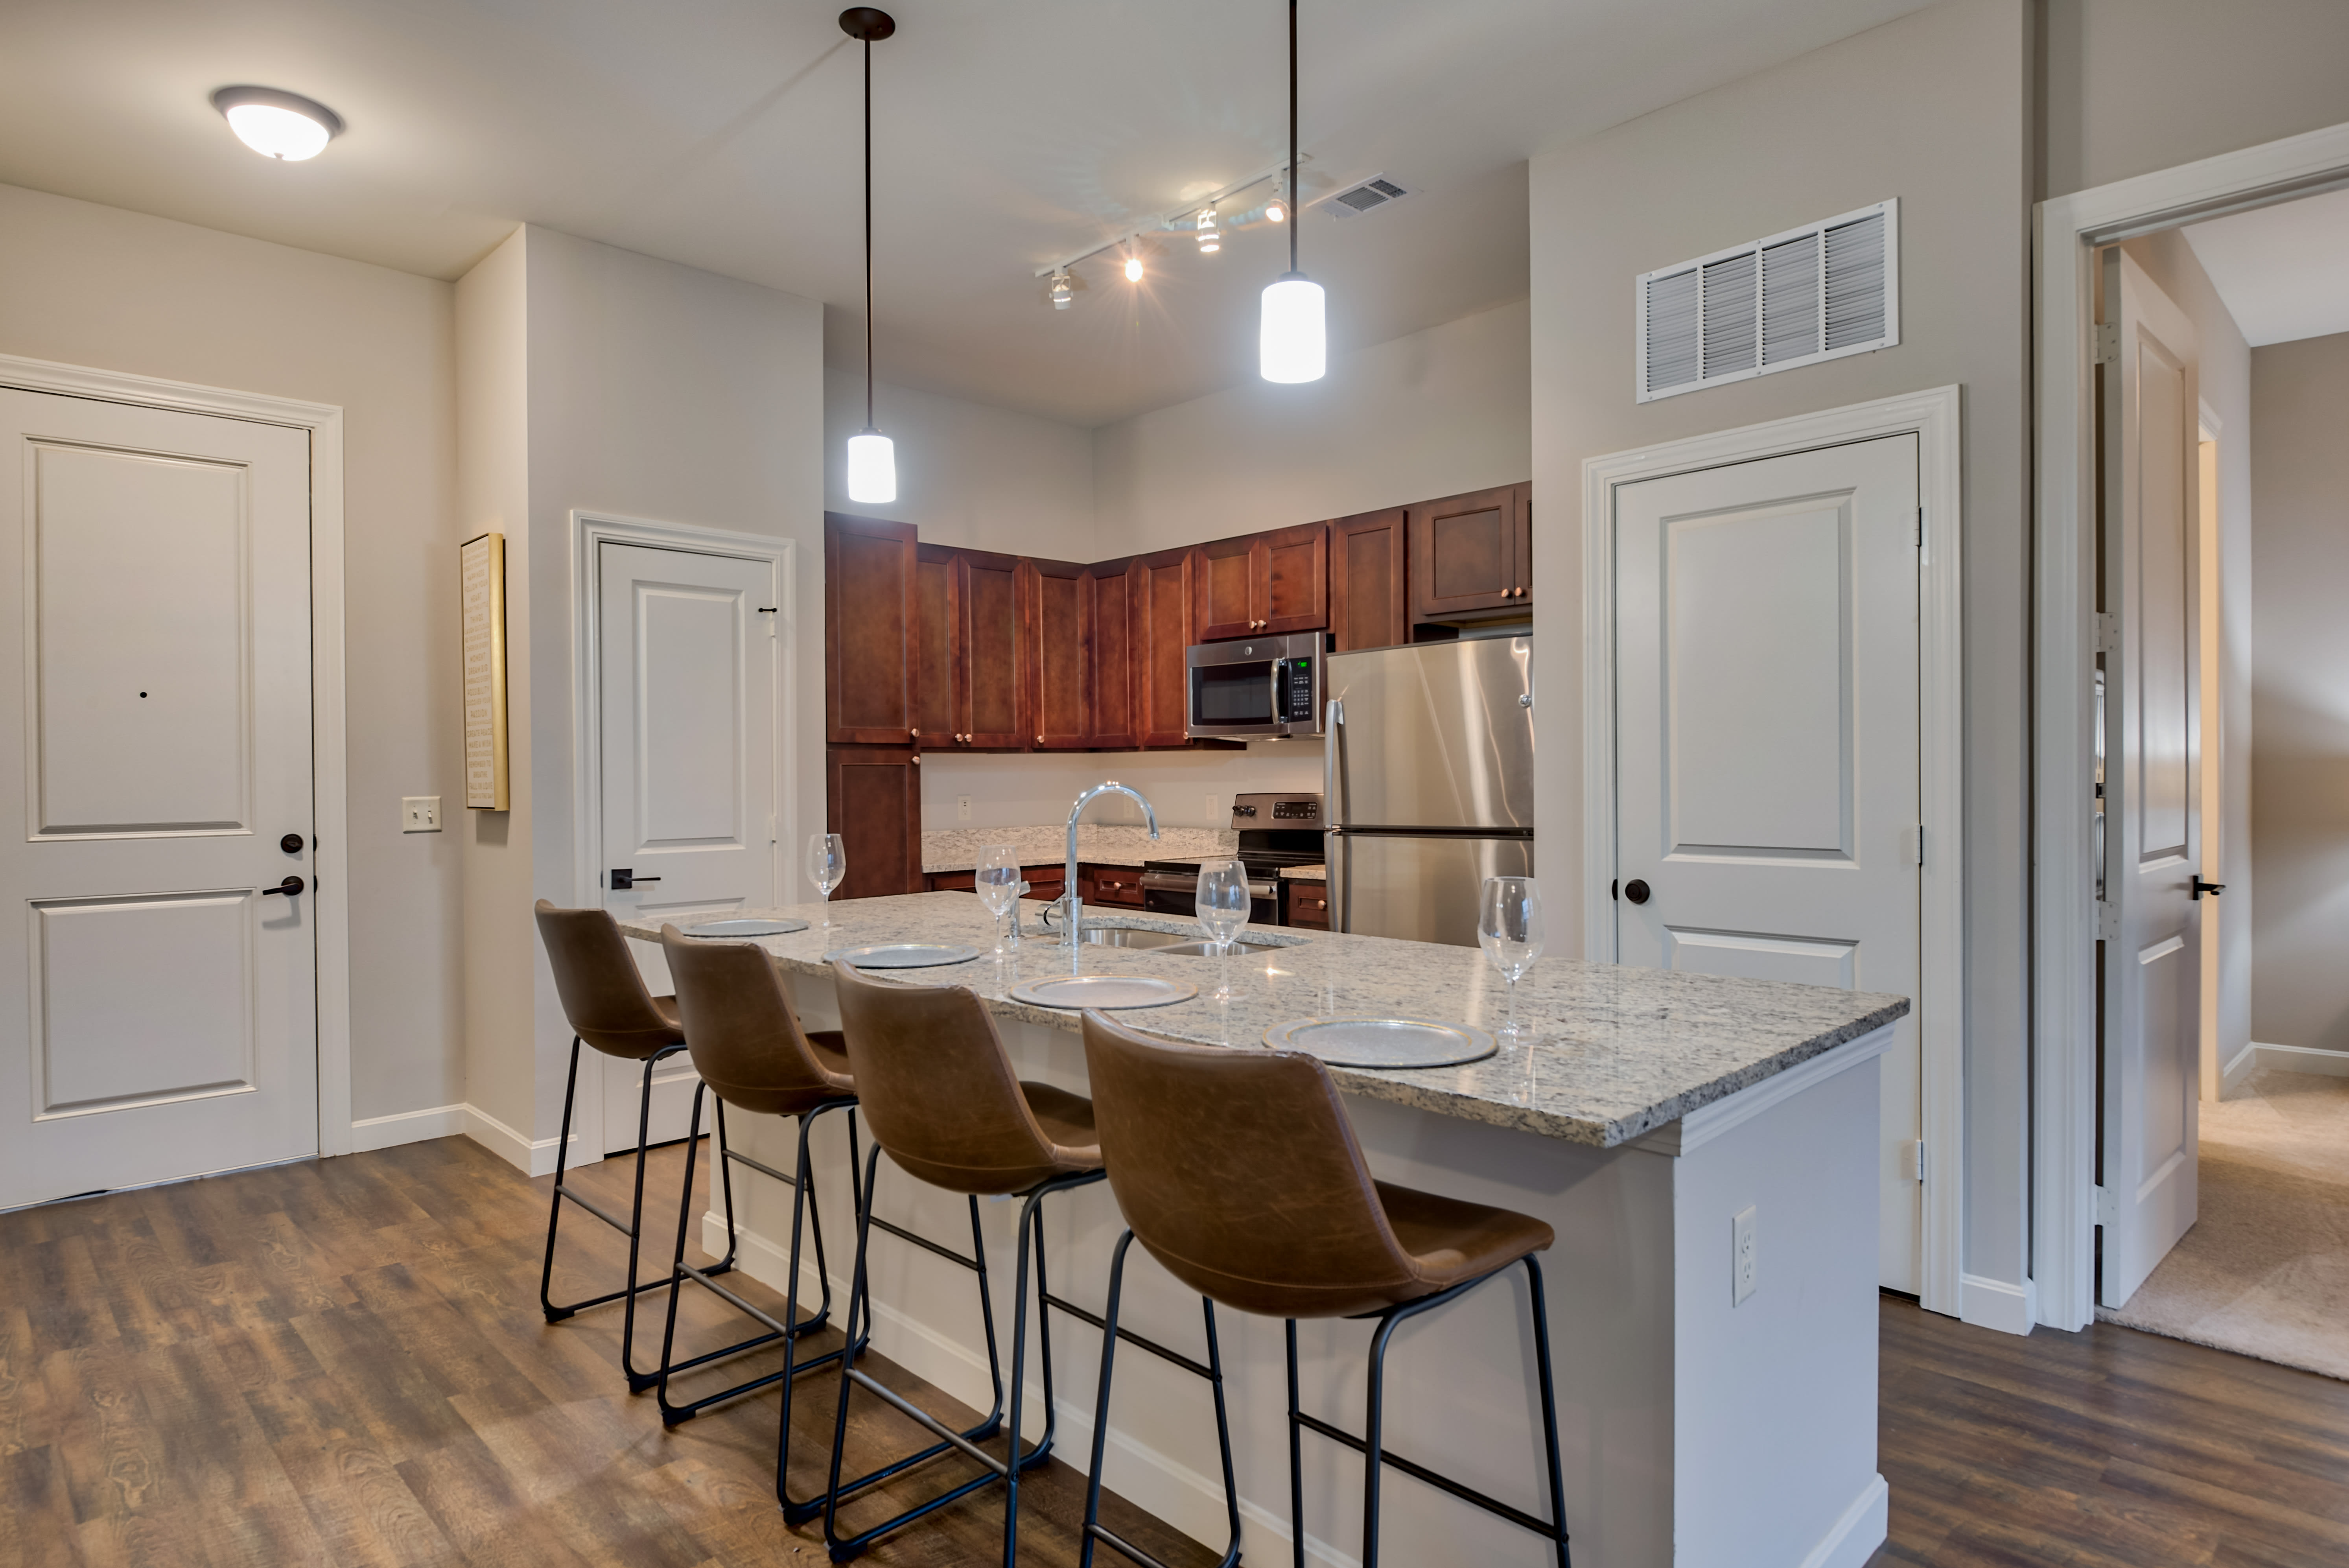 Granite counter tops with stainless steel appliances in the kitchen at Boulders at Overland Park Apartments in Overland Park, Kansas